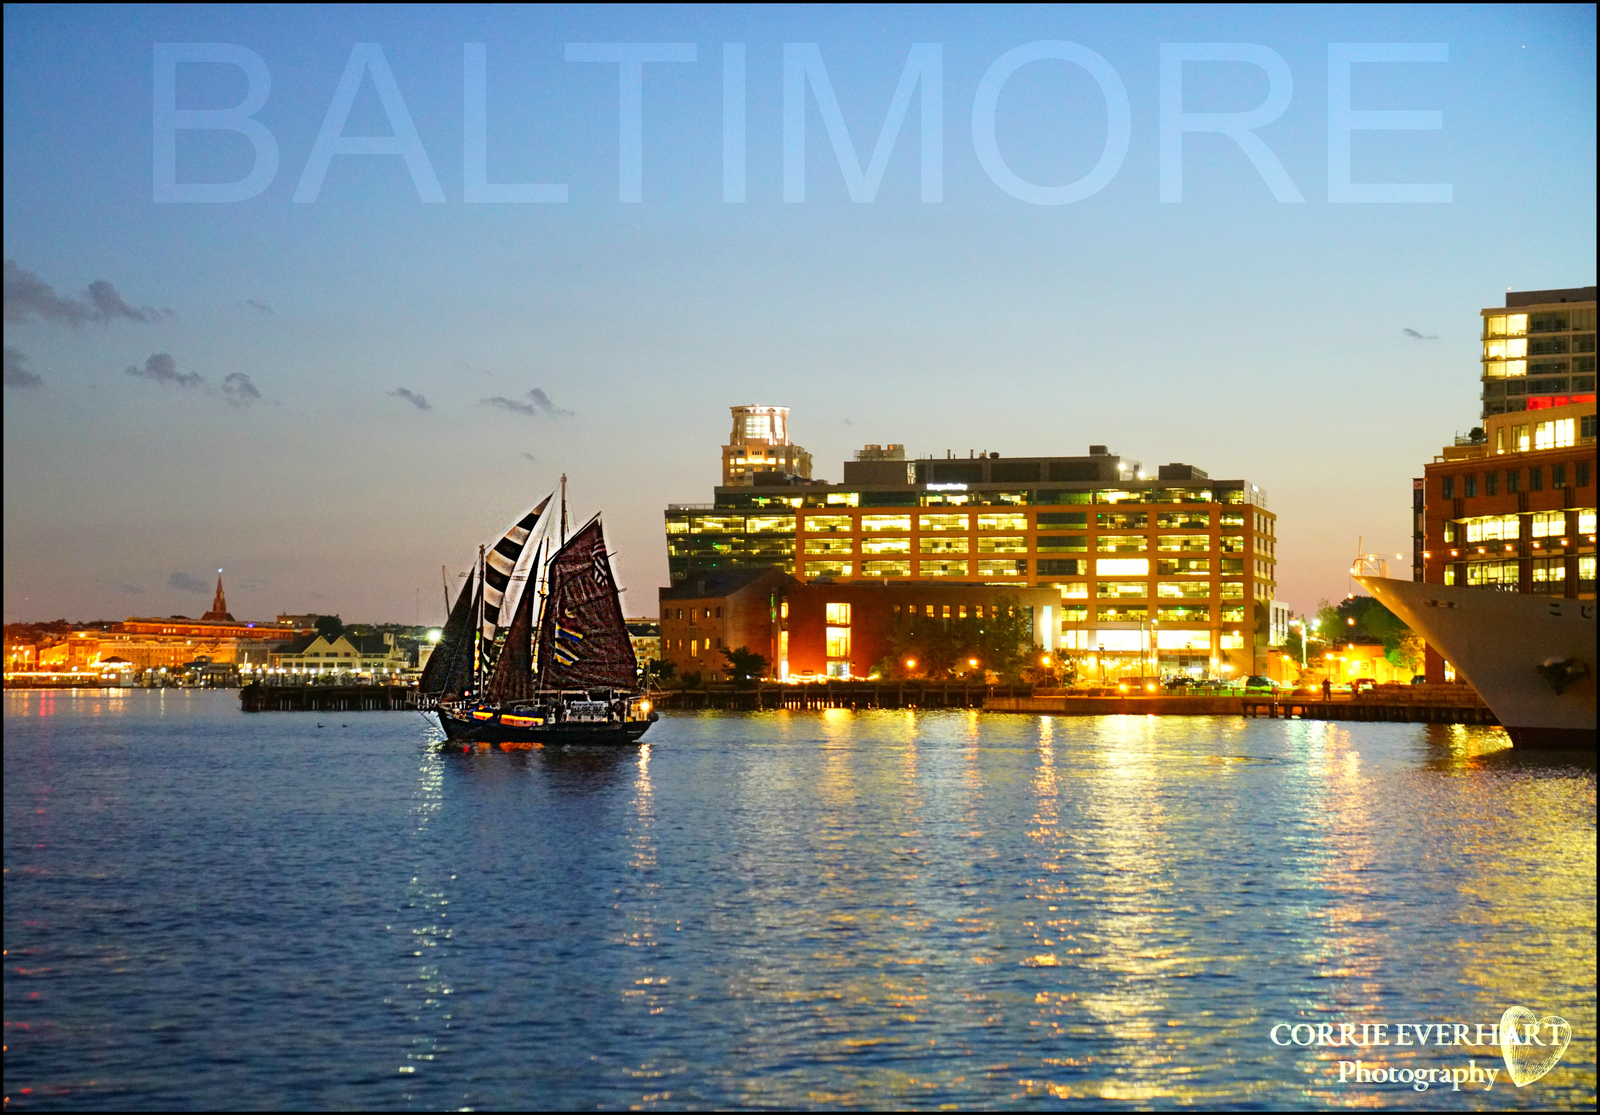 Primary image for Baltimore evening breeze